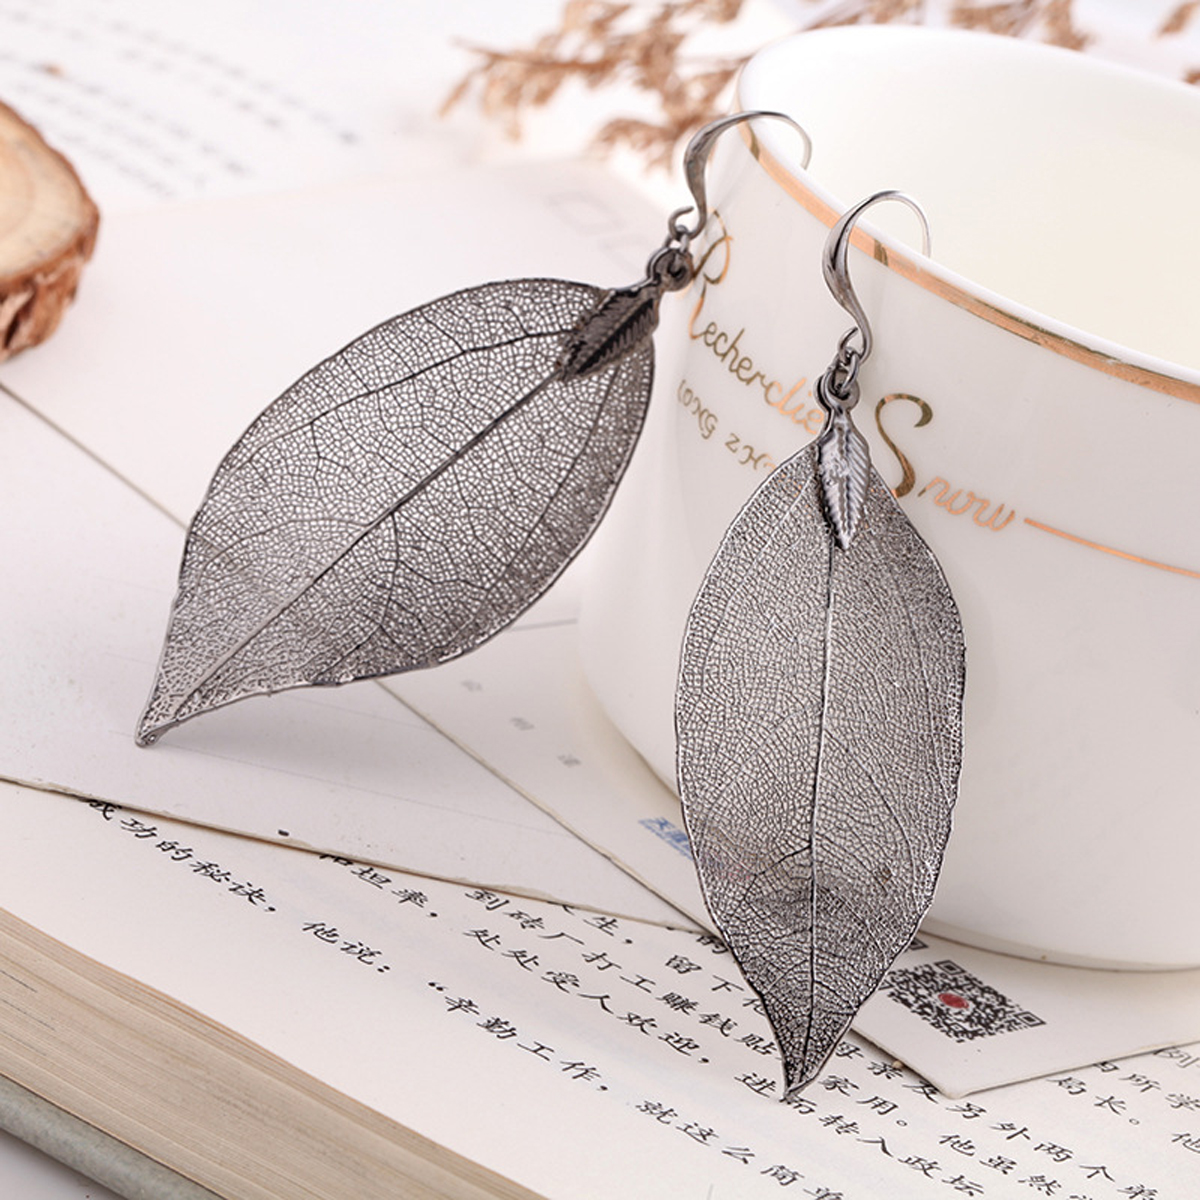 2017 Fashion Unique Natural Real Dipped Leaf Big Statement Earrings Bohemian Long Dabgle Earrings For Women